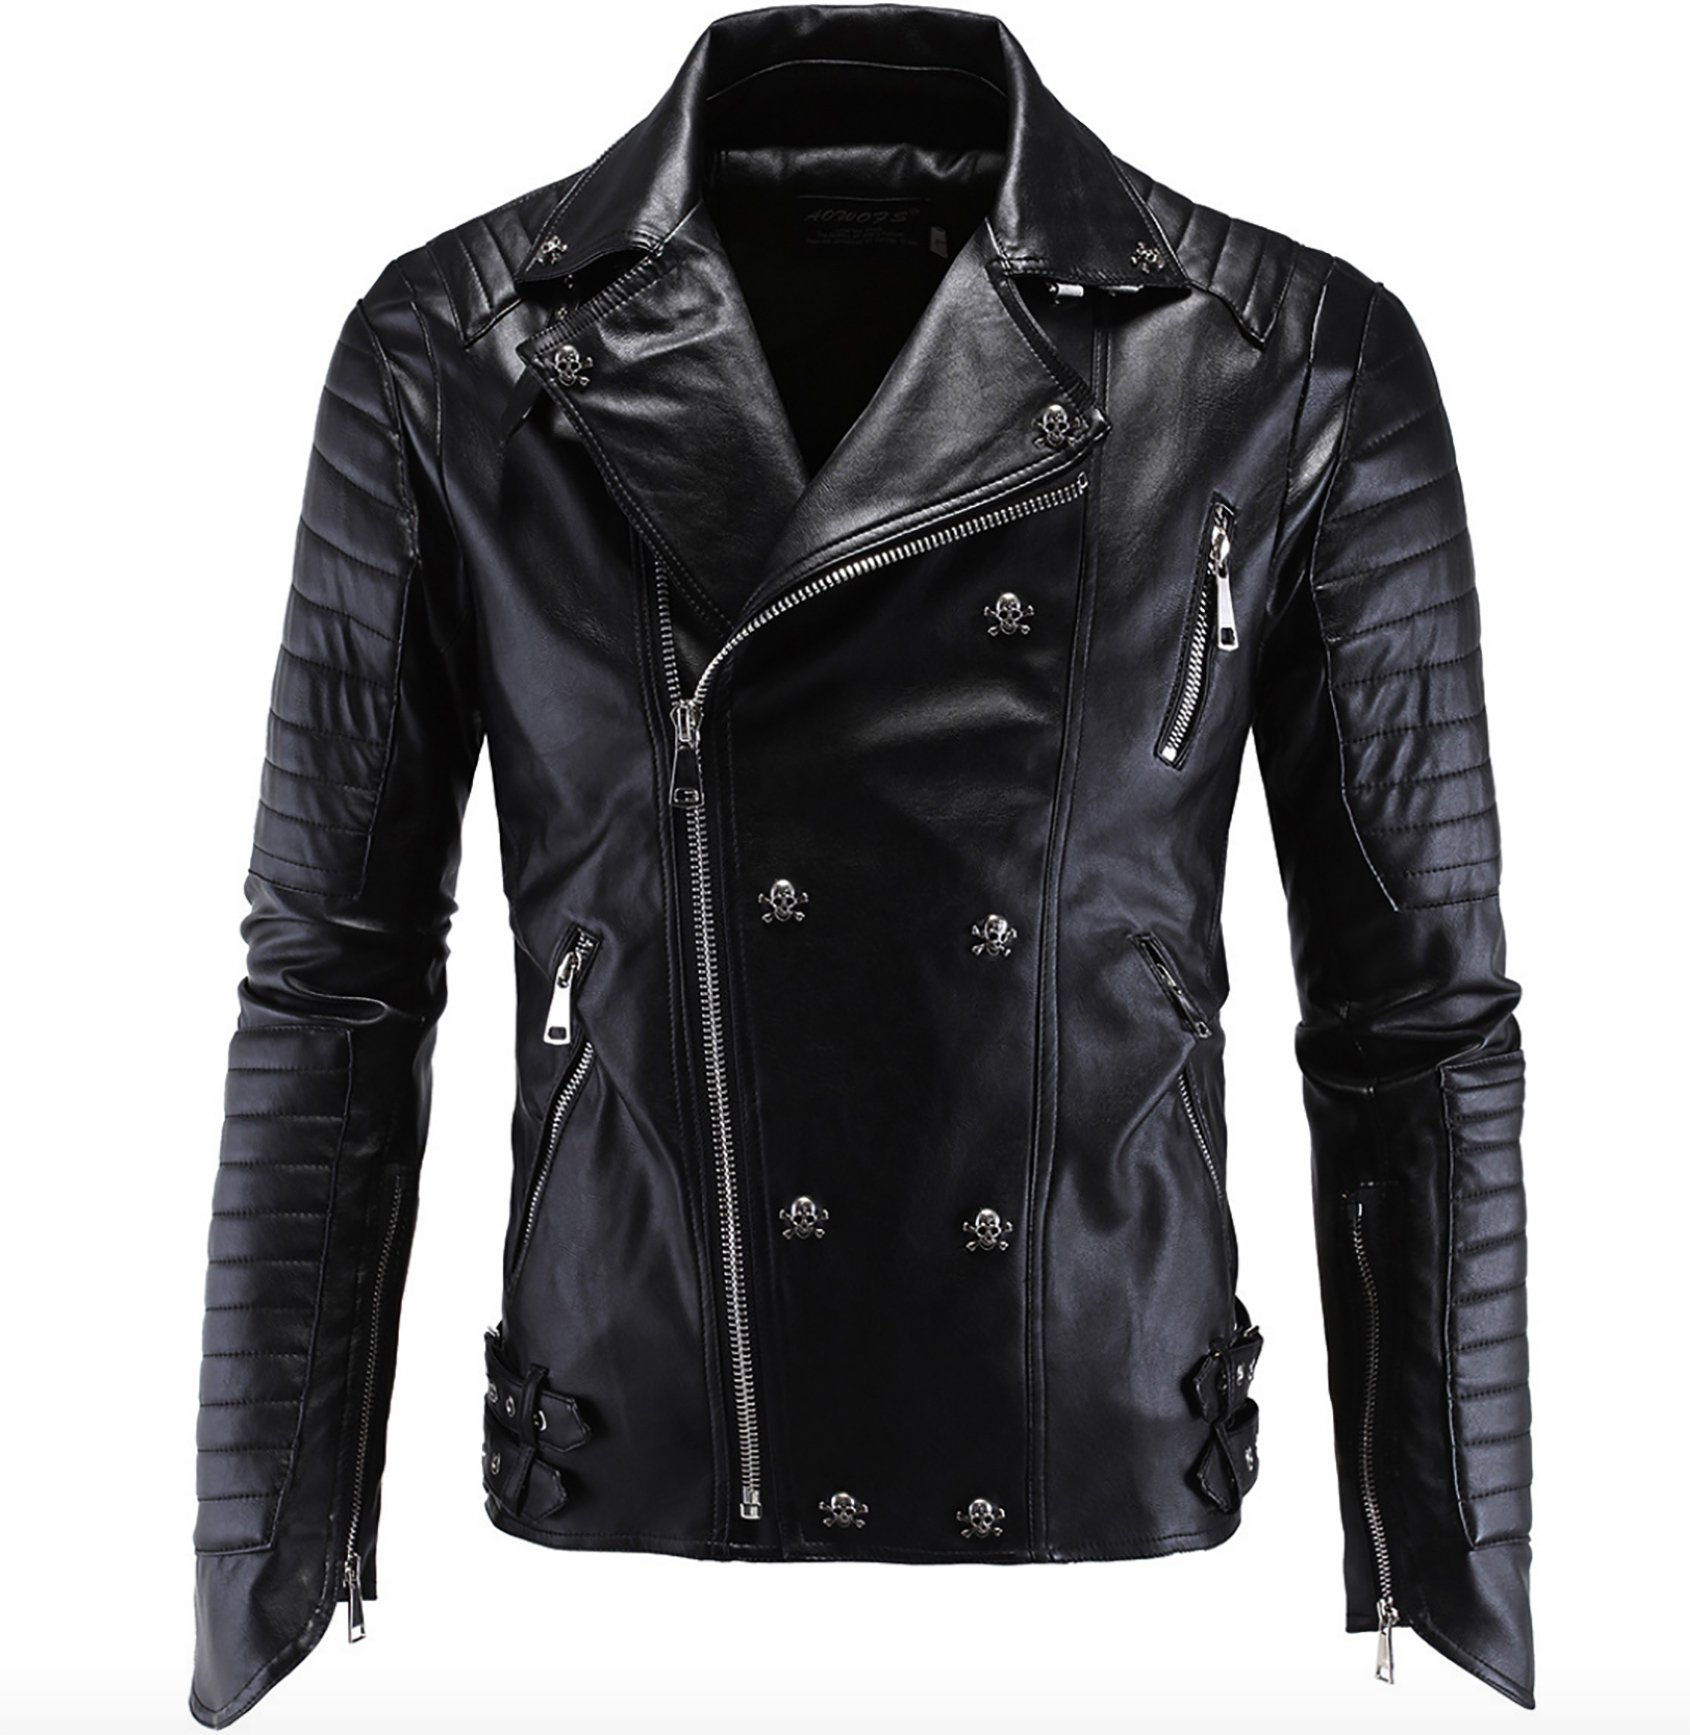 Elonglin Mens Coat Moto Rivet Skull Jacket Faux Leather Black US M (Asian XXL)